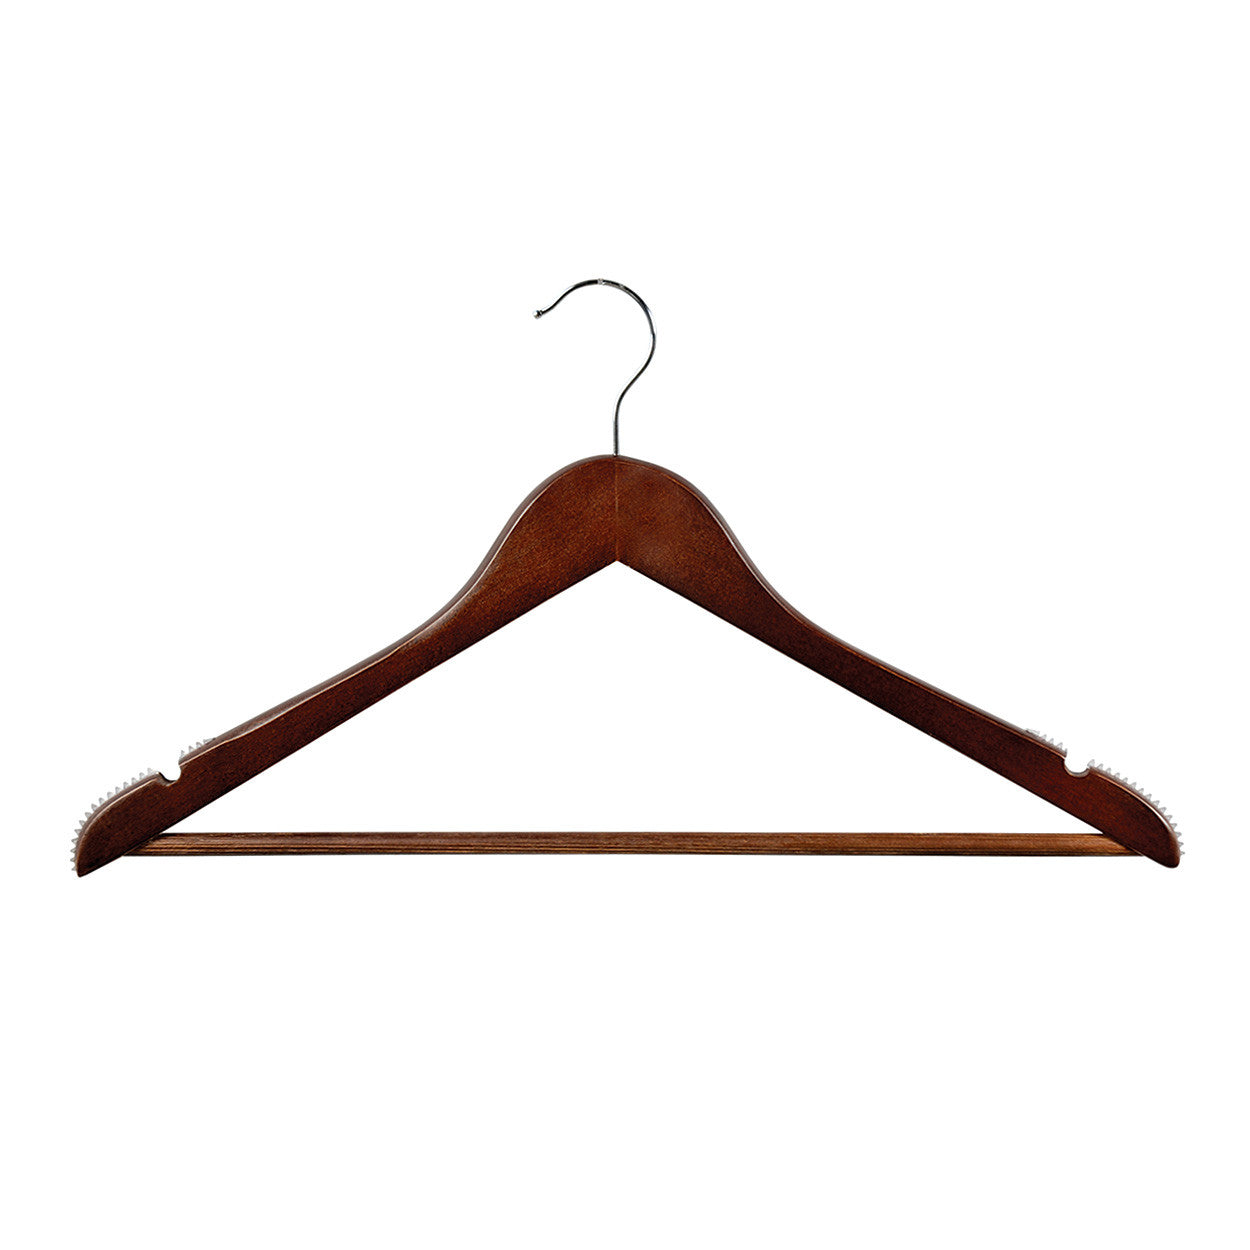 Wenge Wooden hanger with notches, ribs & rail 440Wx14mm Thick (Bundle of 50) H2650WE-50